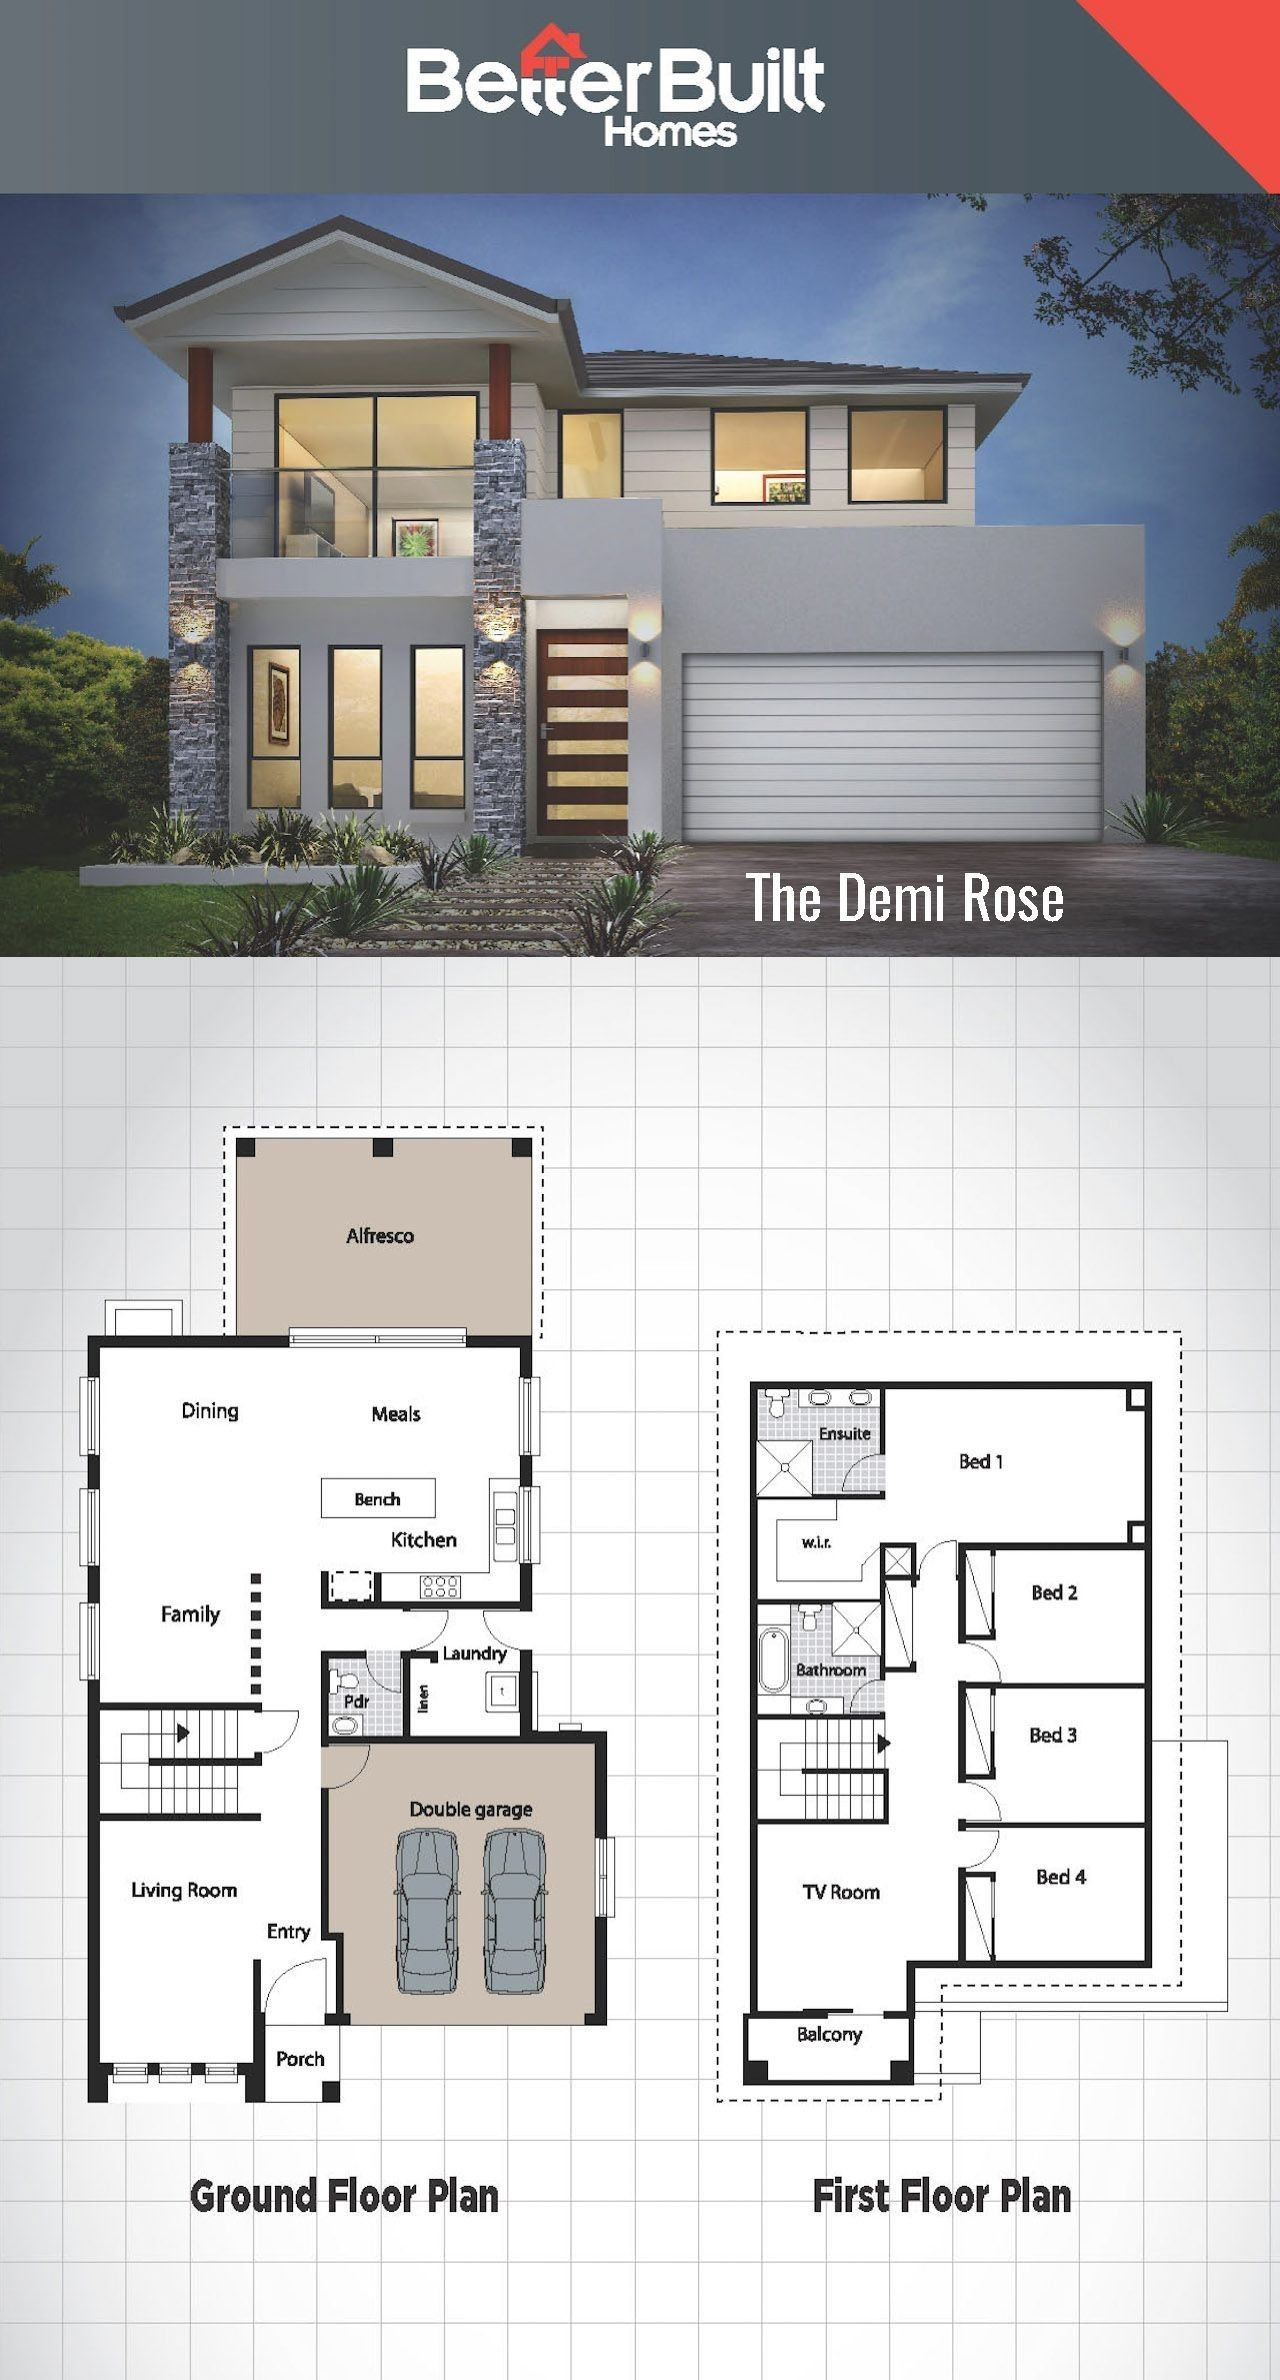 2 Story House Plans With Basement Awesome New 2 Story House Plans House Plans Farmhouse Dream House Plans Double Storey House